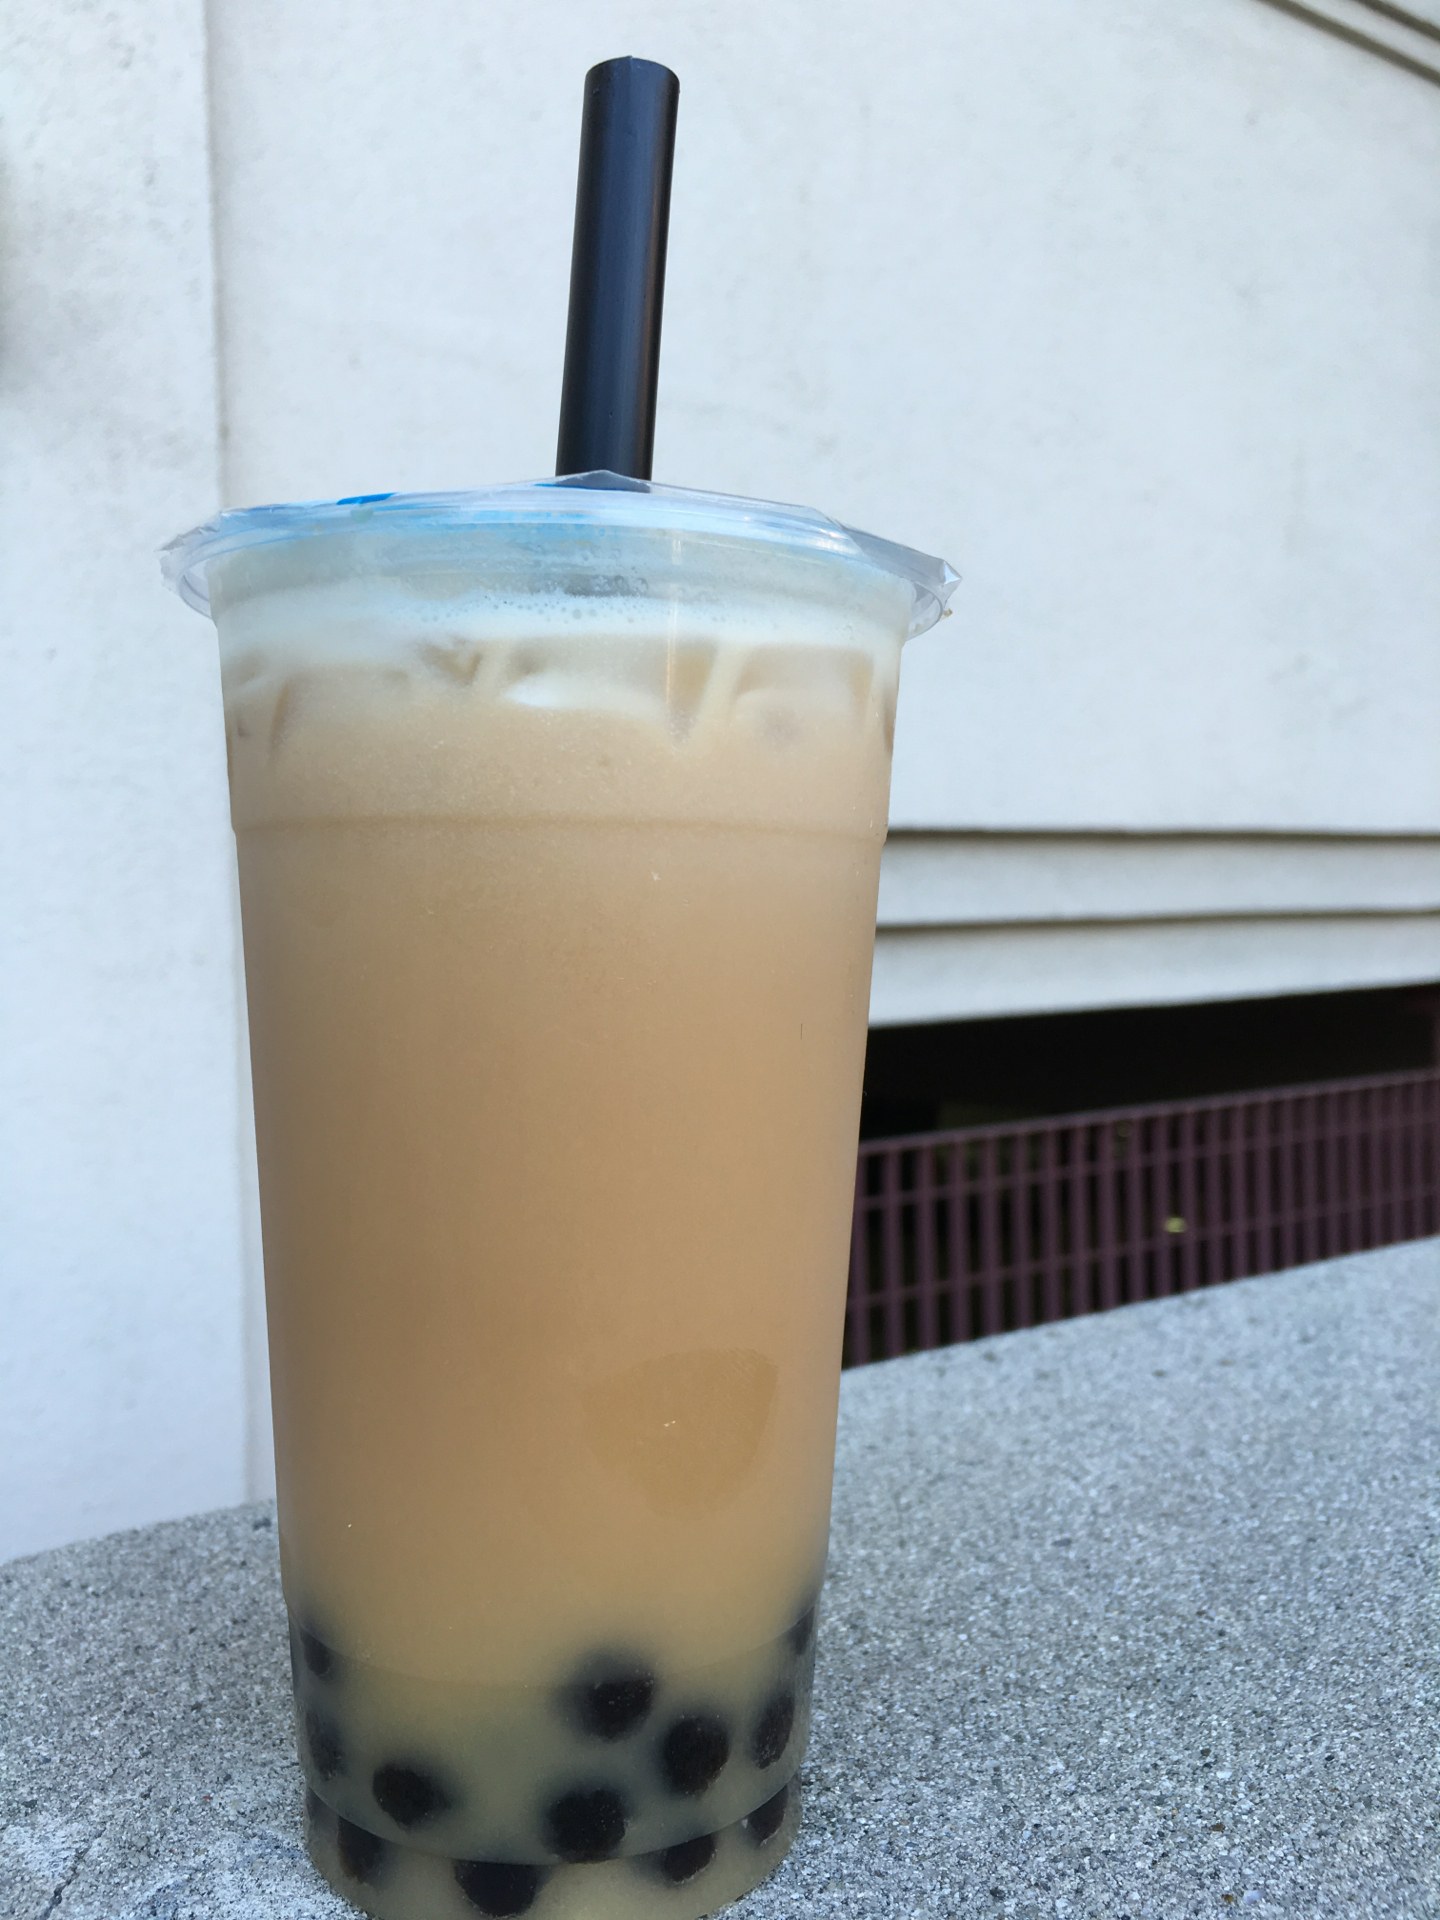 Lychee milk tea from Verde Tea Cafe in Mountain View.